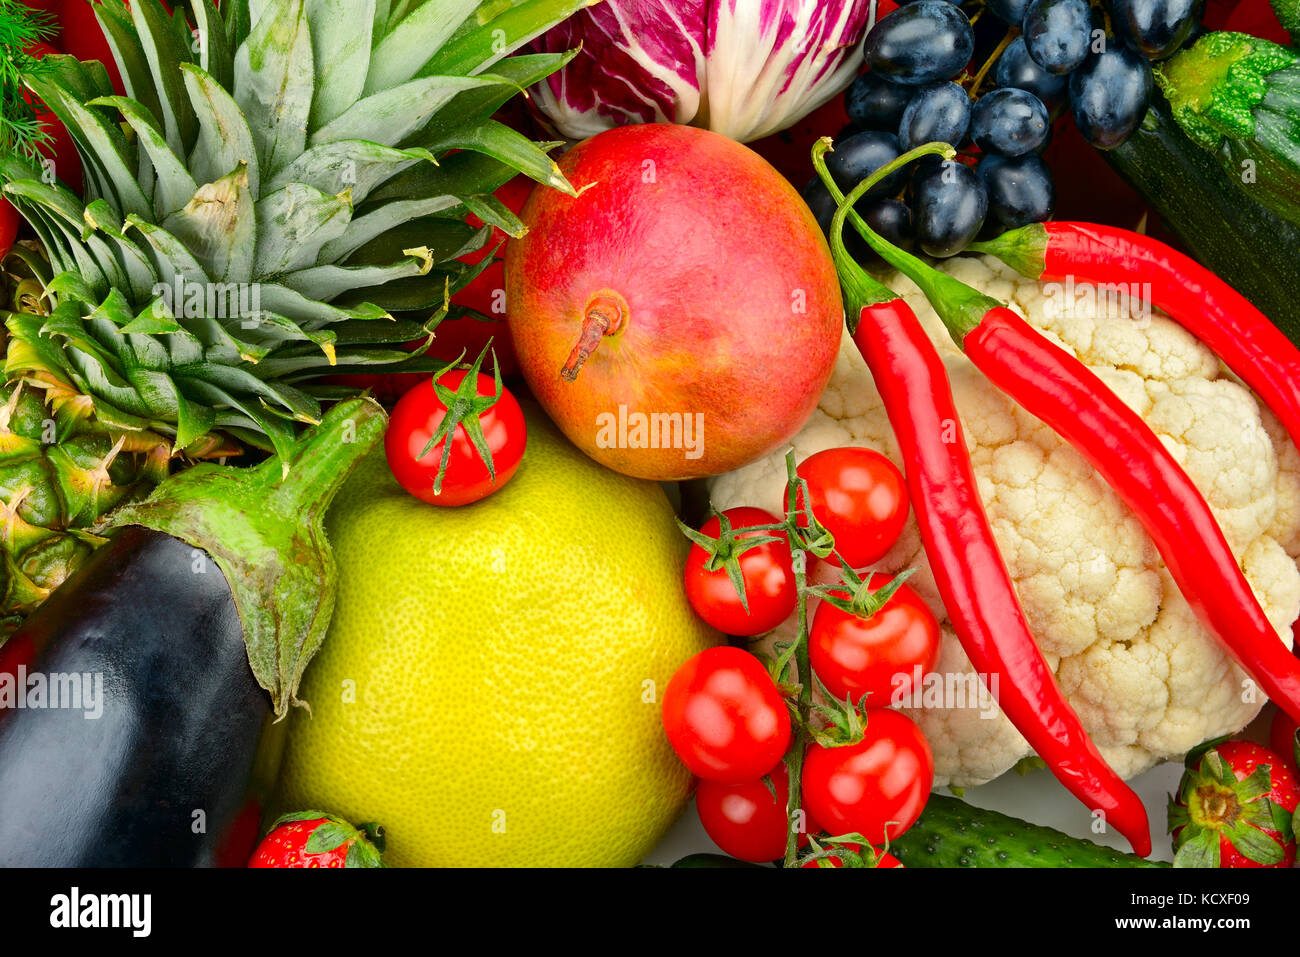 assortment fresh fruits and vegetables isolated on white Stock Photo